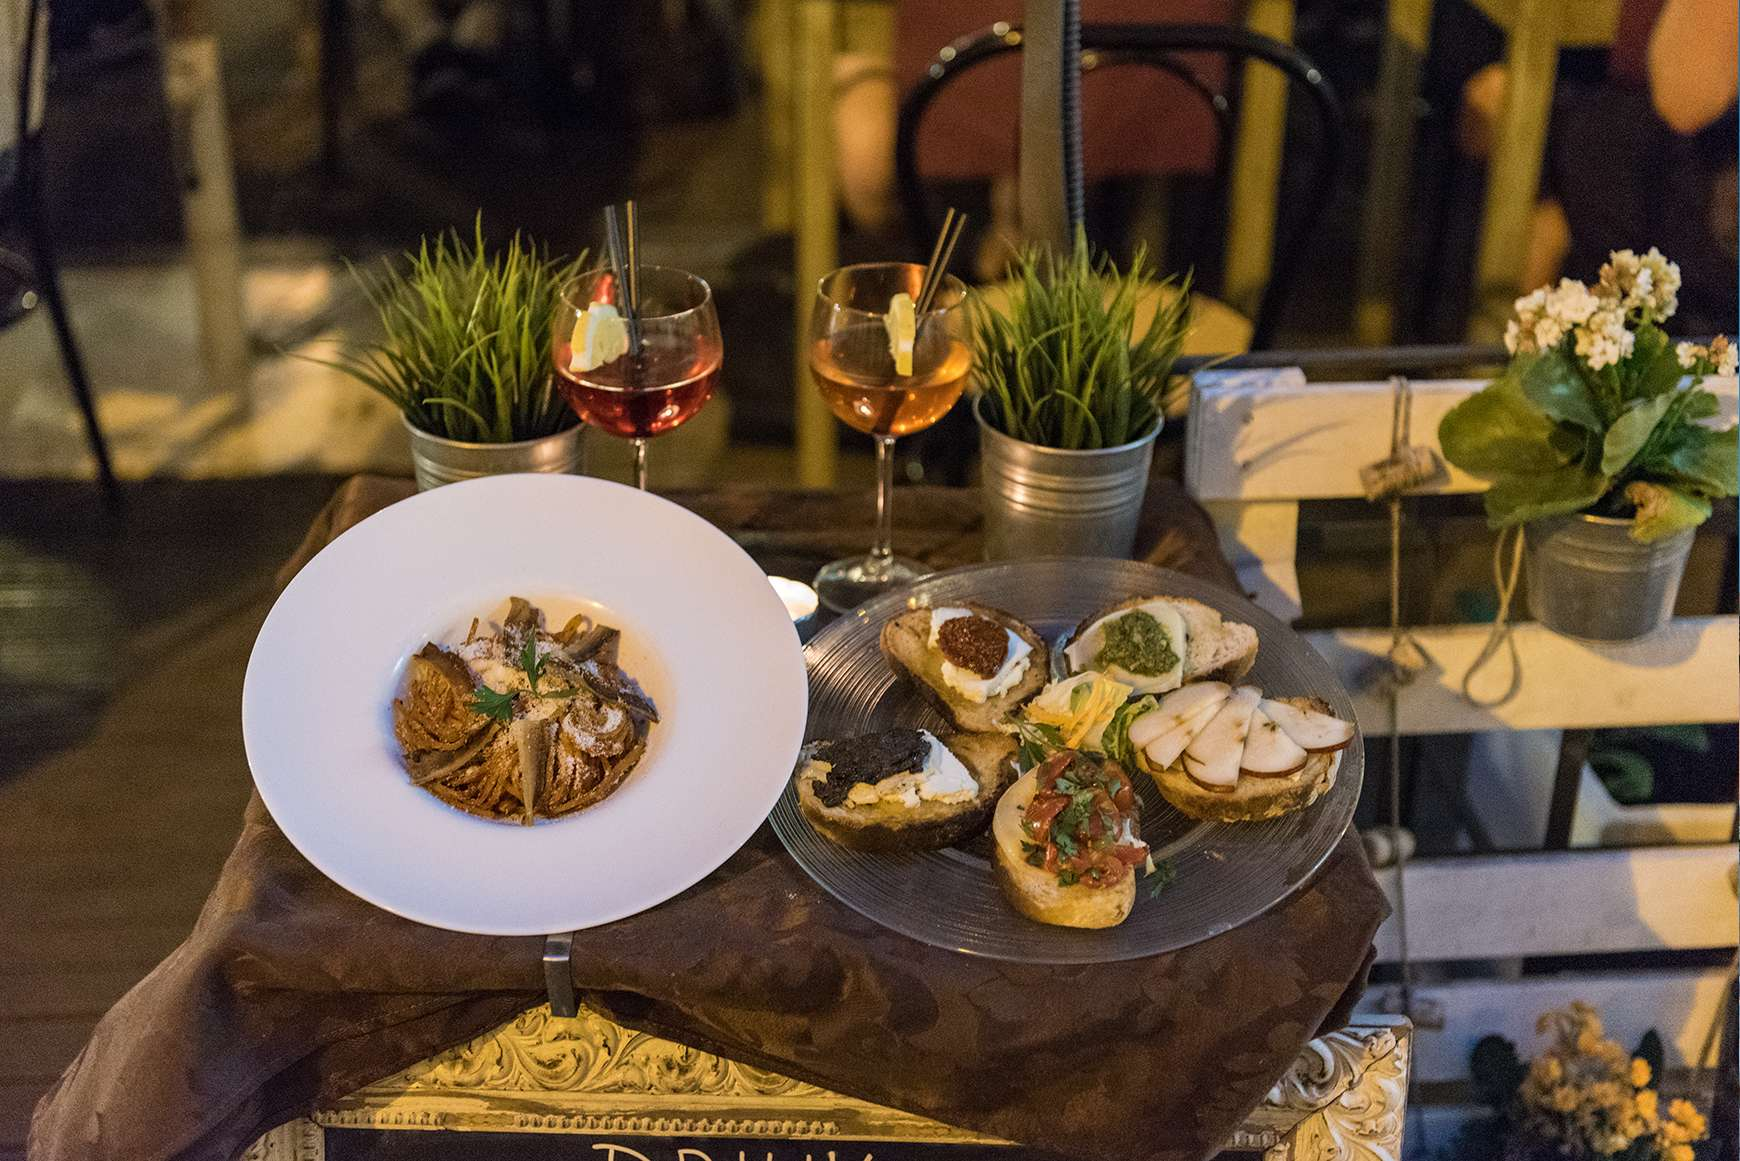 Italian bruschetta and pasta dish served on outdoor table